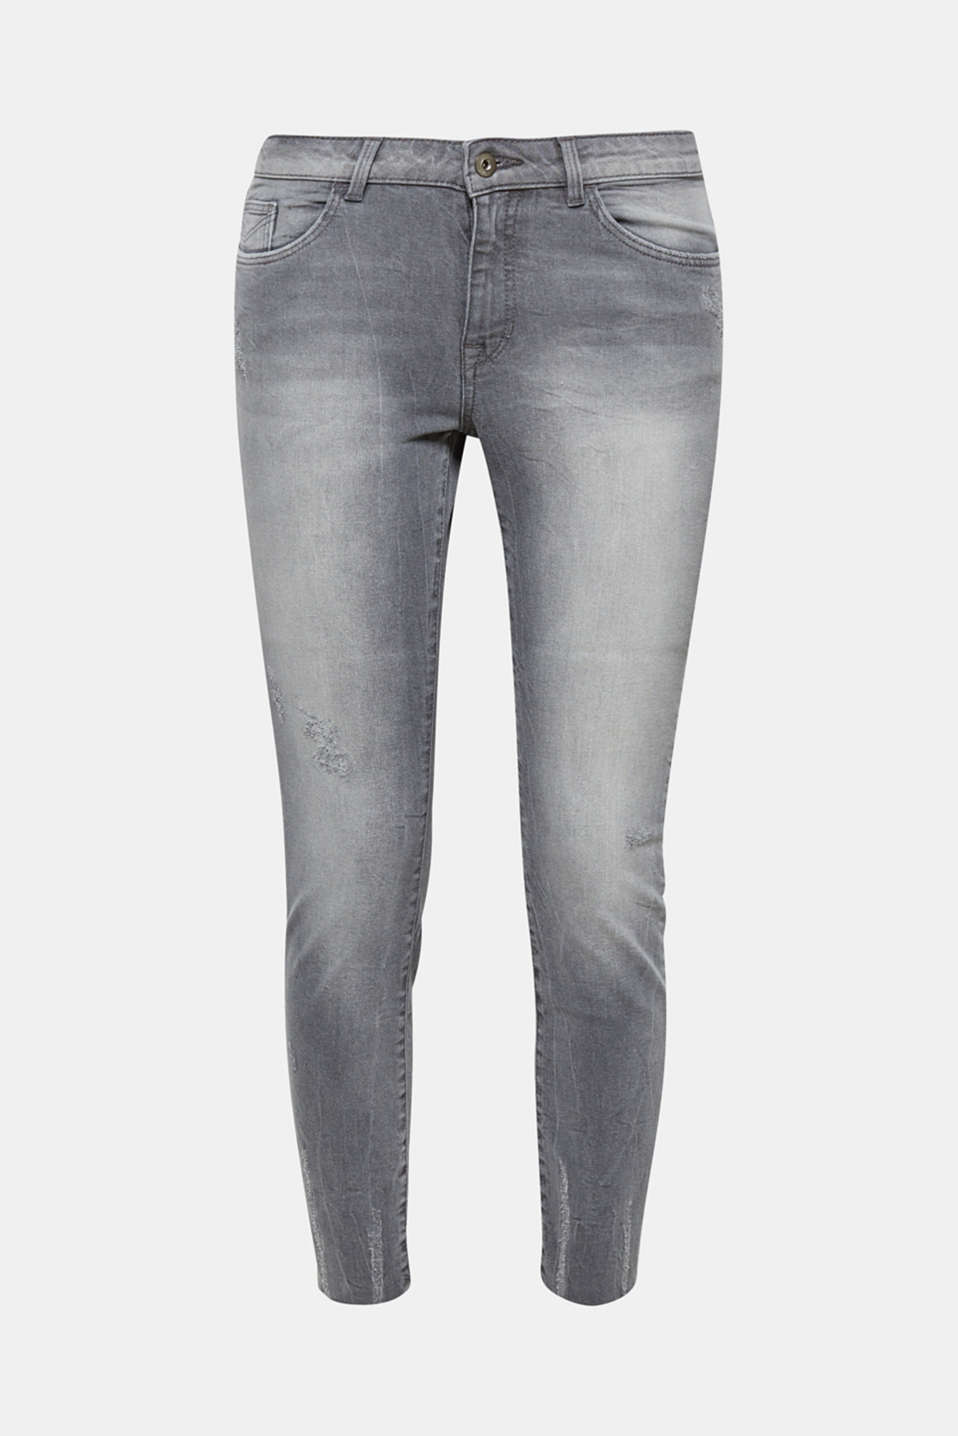 Frayed, cropped leg hems and distressed effects give these jeans a trendy, casual look.